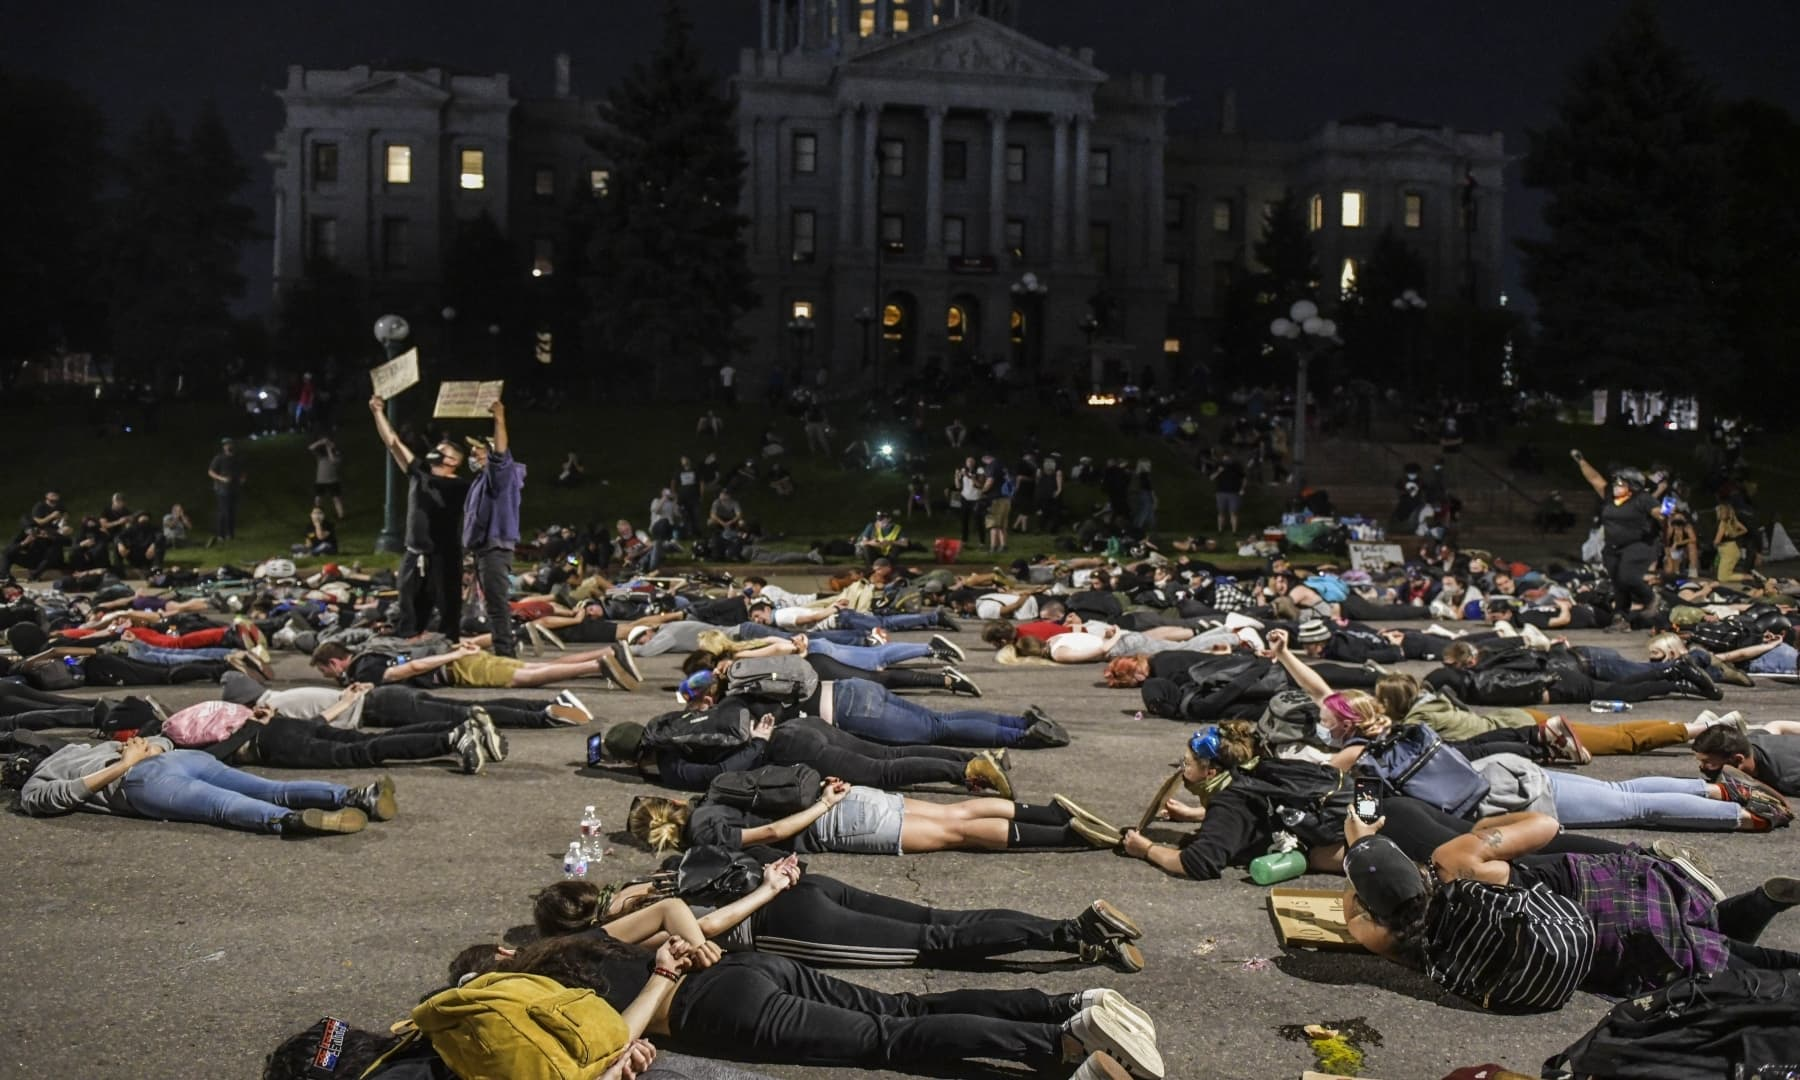 People lie down in the middle of the street in front of the Colorado State Capitol to protest on June 1, in Denver, Colorado. — AFP